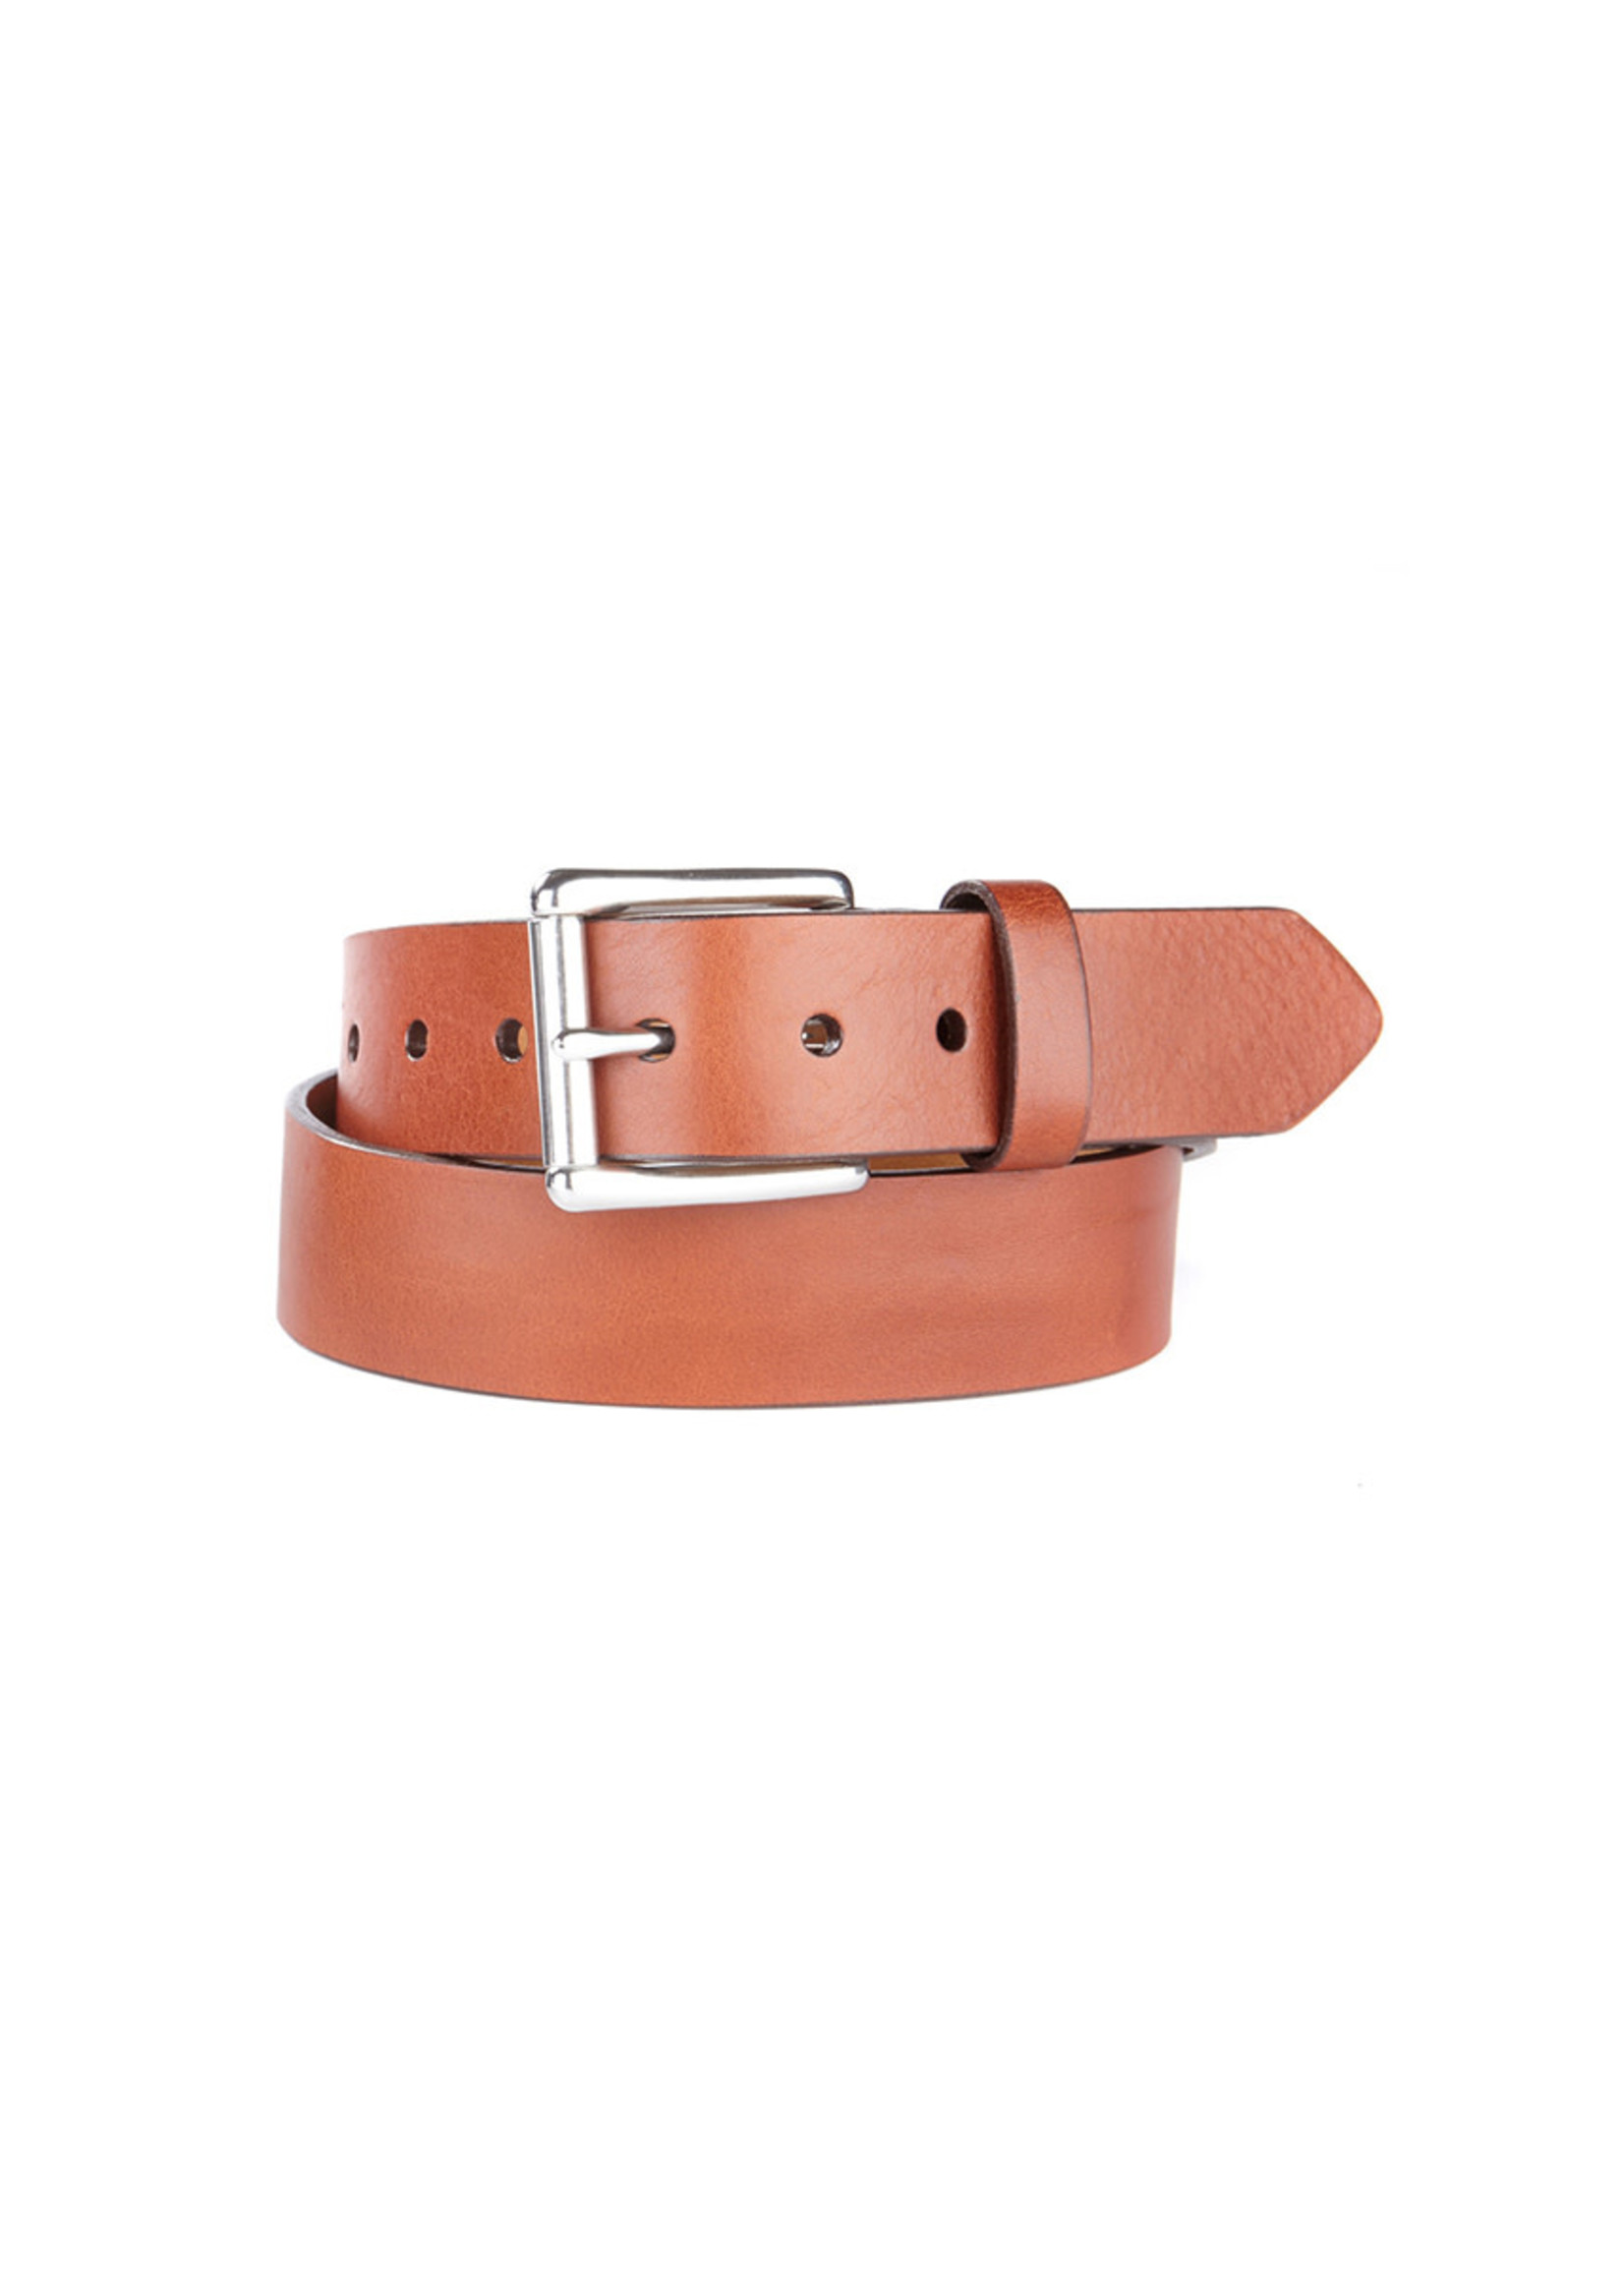 BRAVE LEATHER CLASSIC 001 BELT